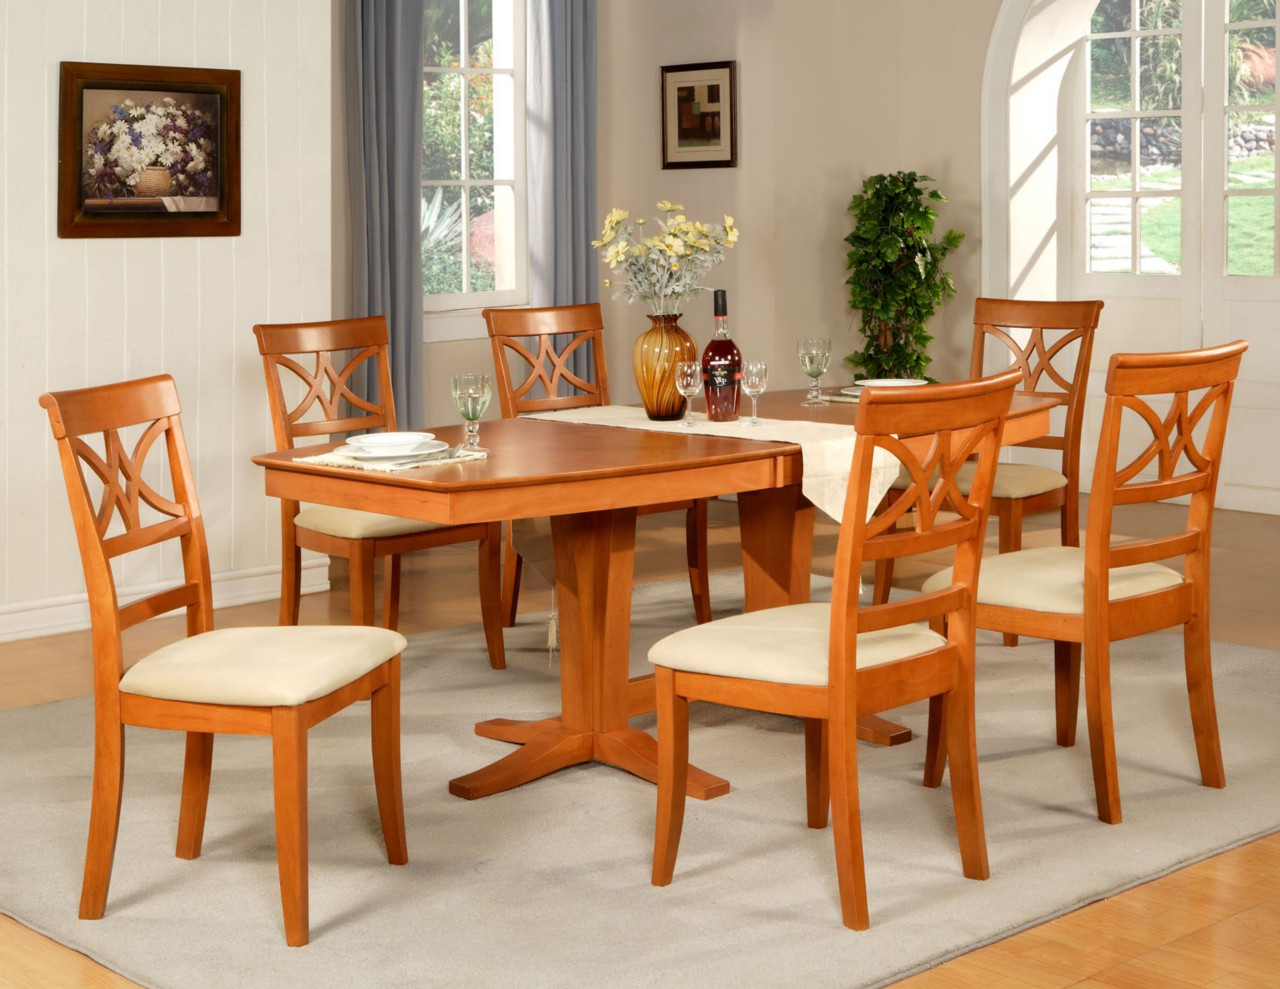 7pc dining room set table and 6 wood seat chairs in light cherry finish ebay. Black Bedroom Furniture Sets. Home Design Ideas